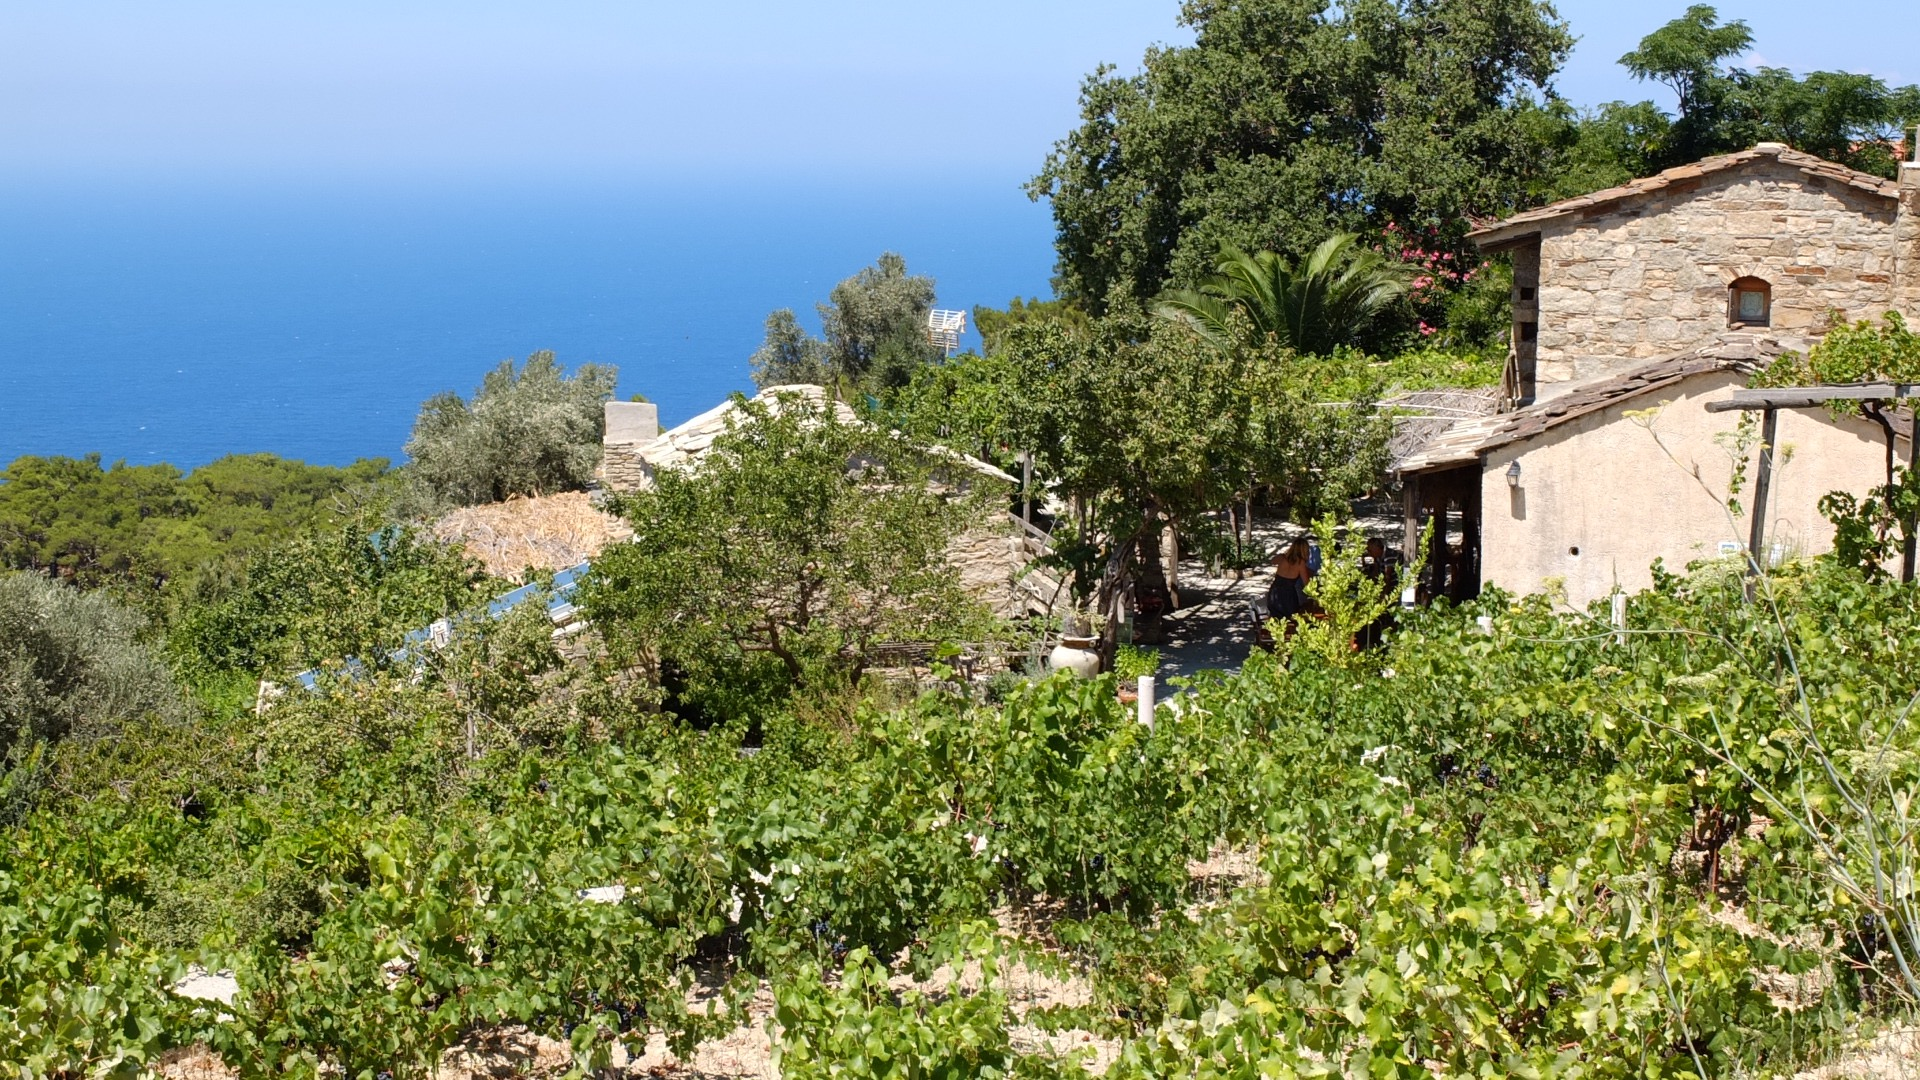 Retreats in Mediterranean